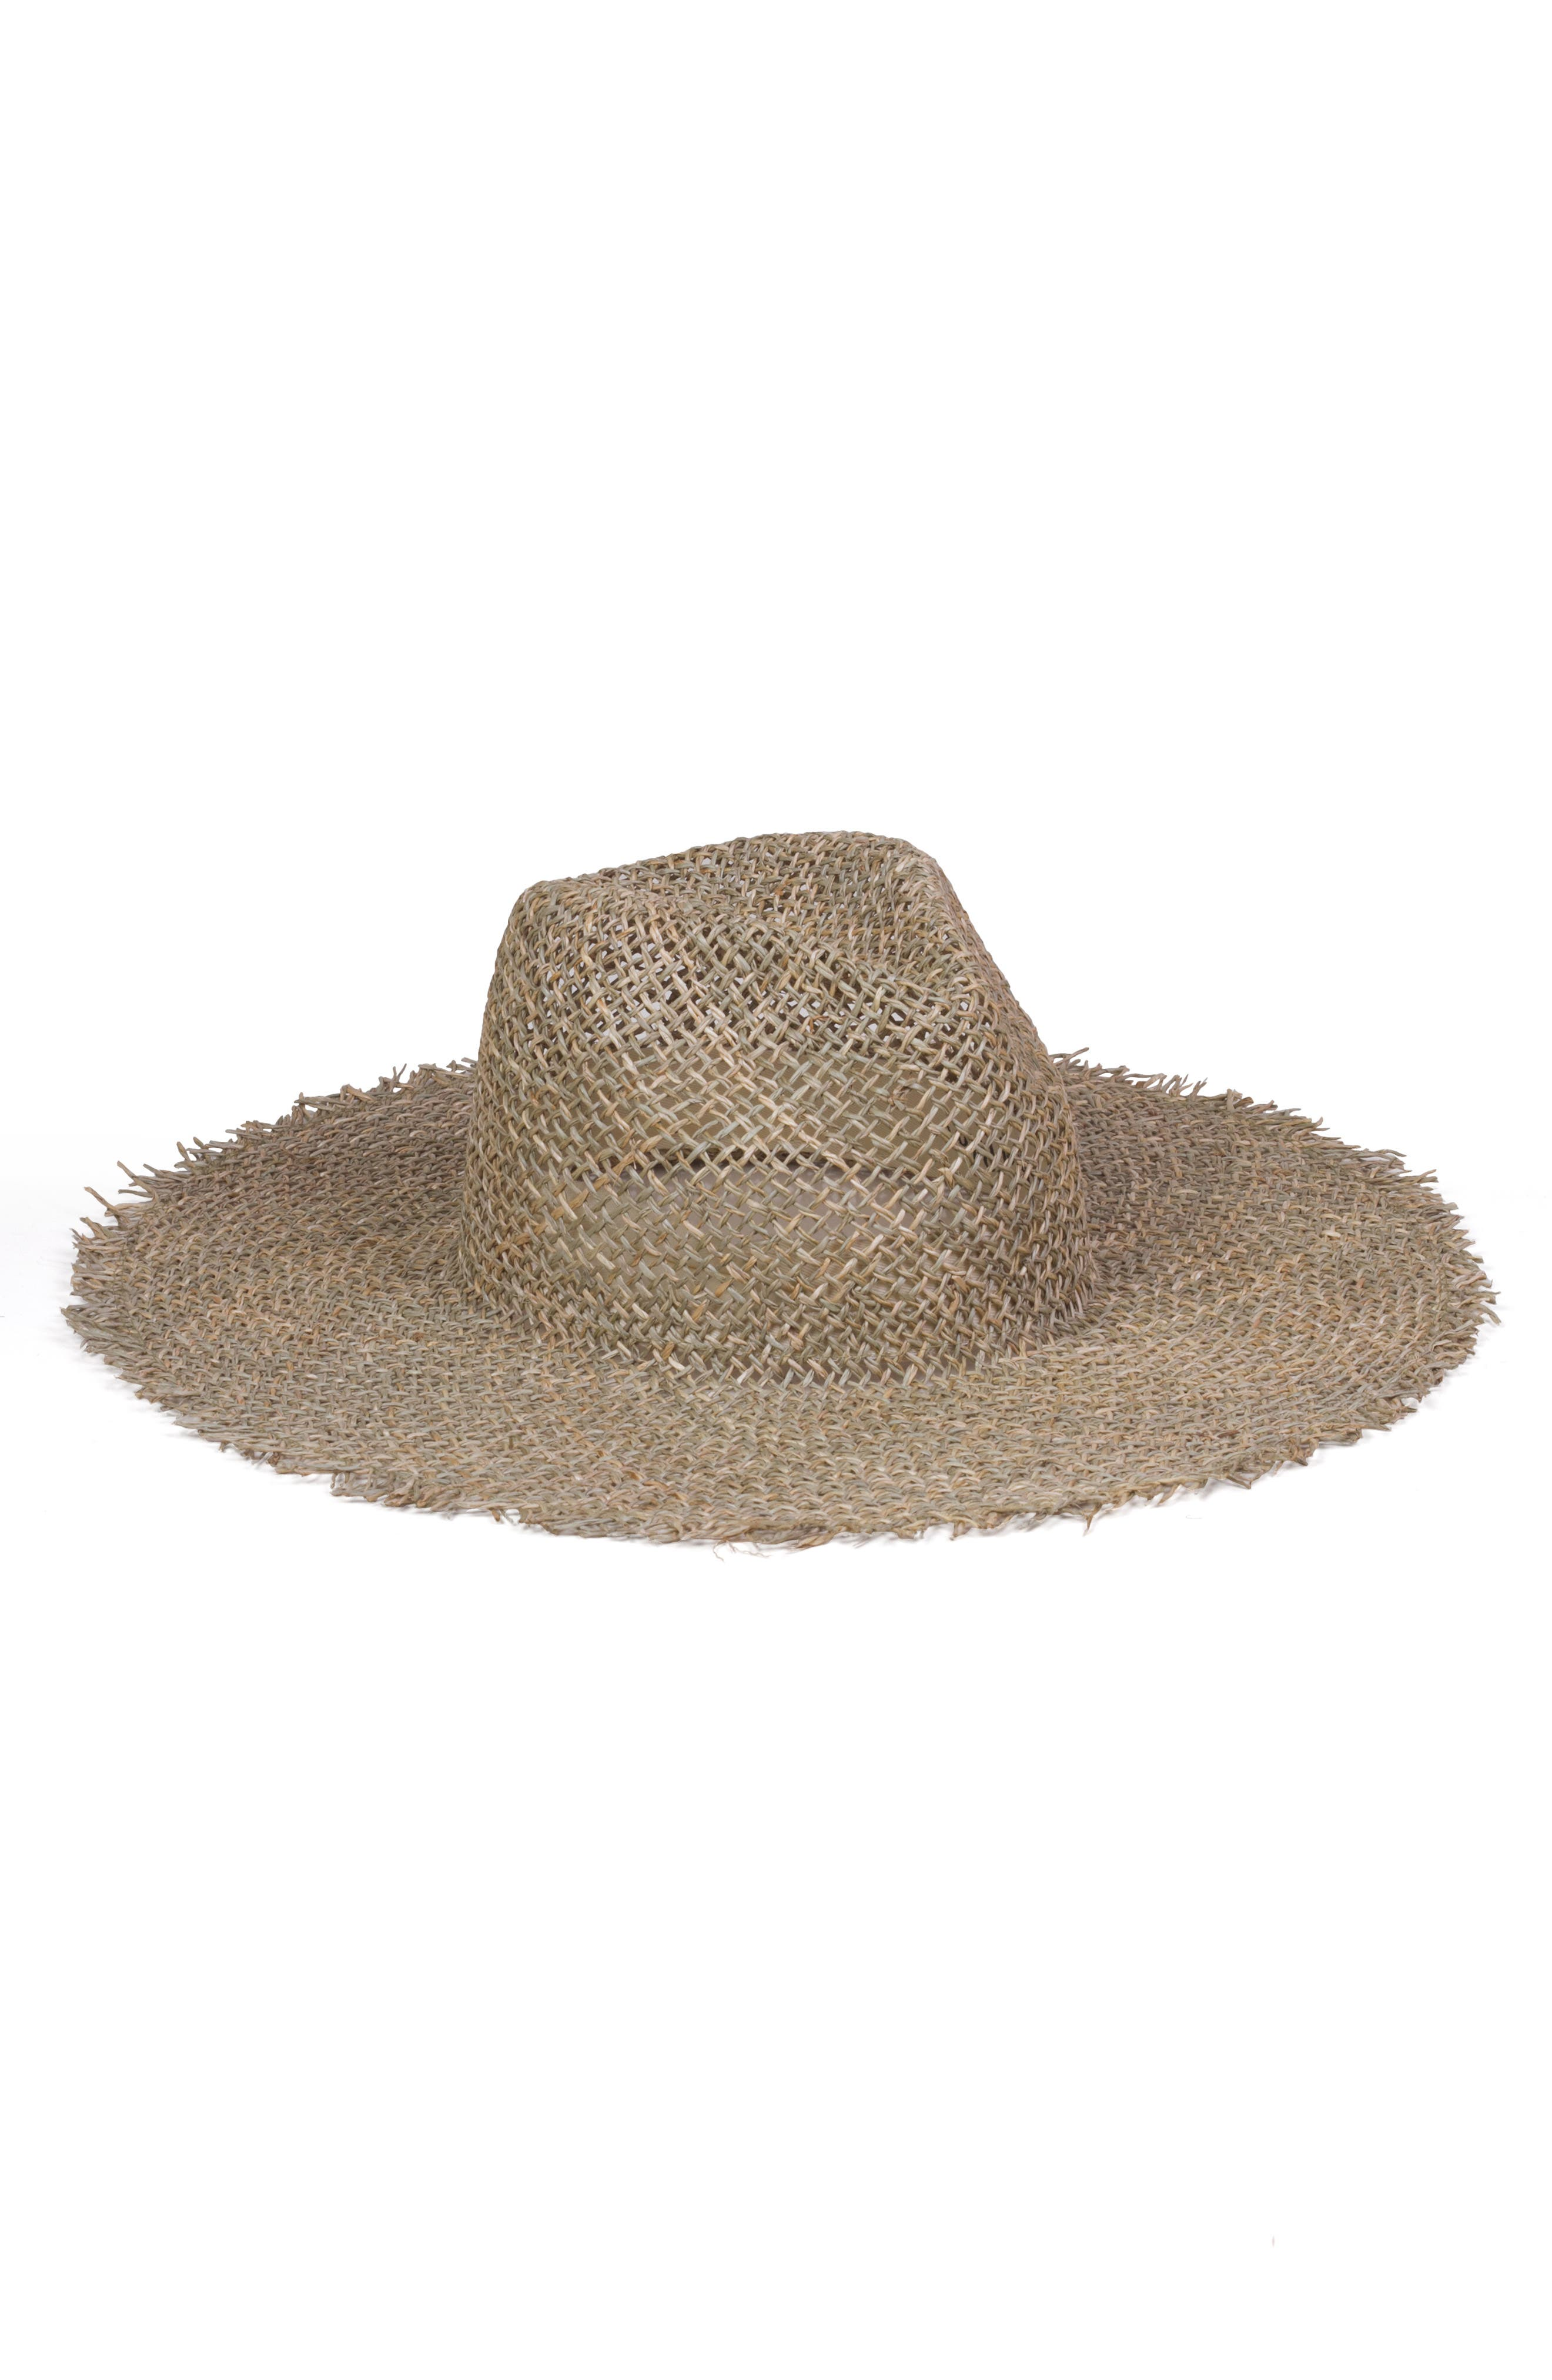 LACK OF COLOR Sunny Zip Fedora Hat - Brown in Seagrass